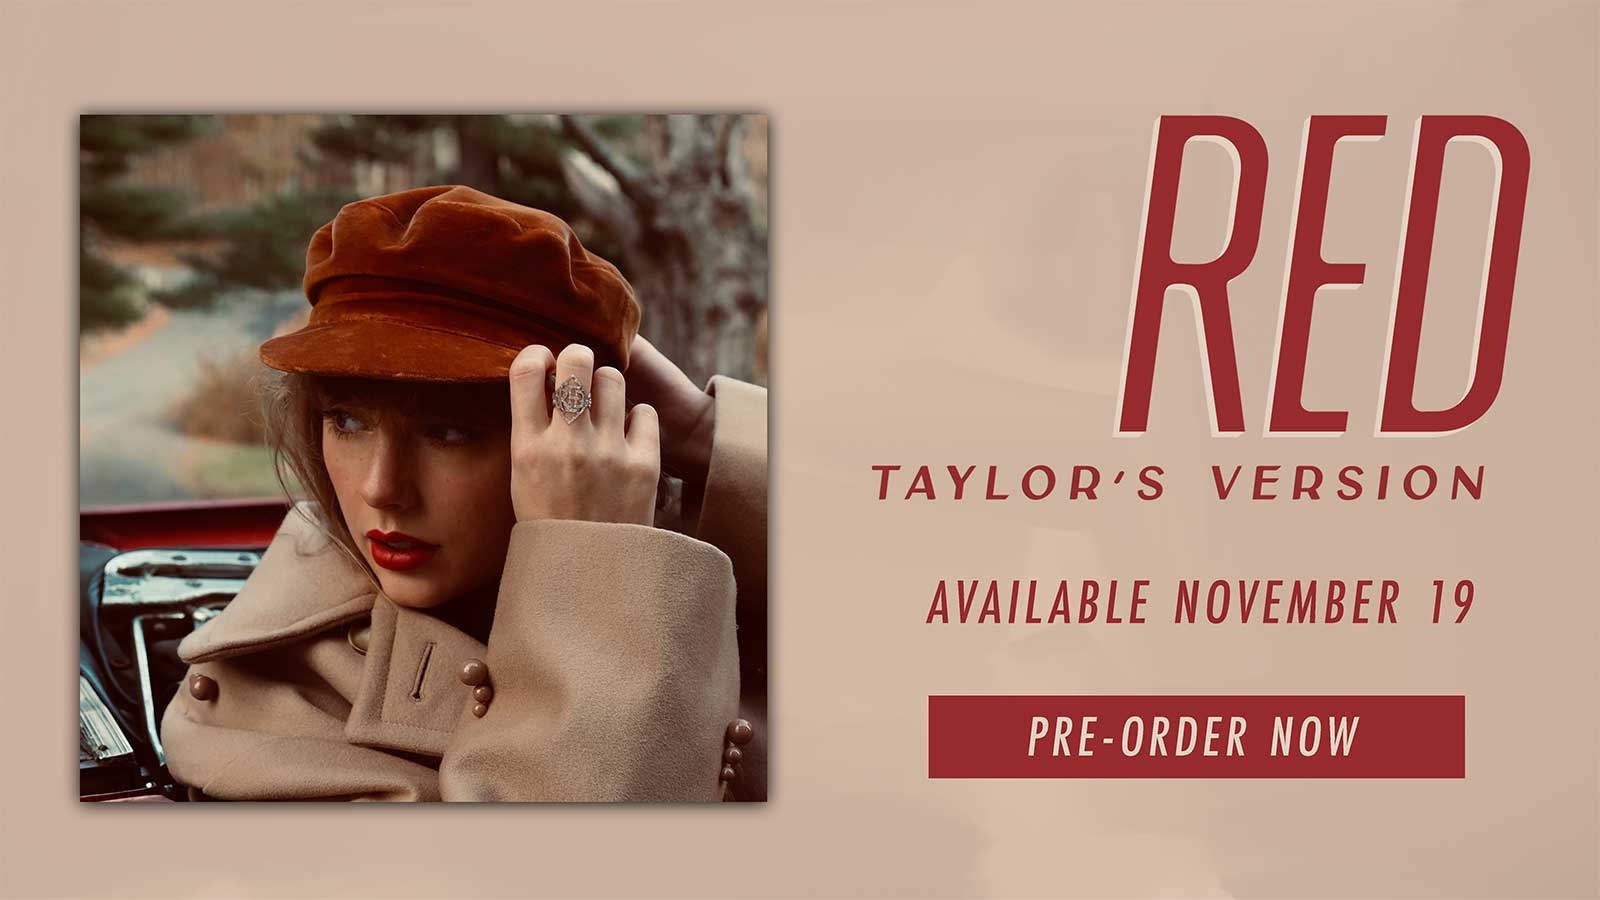 Red Taylor's version cover